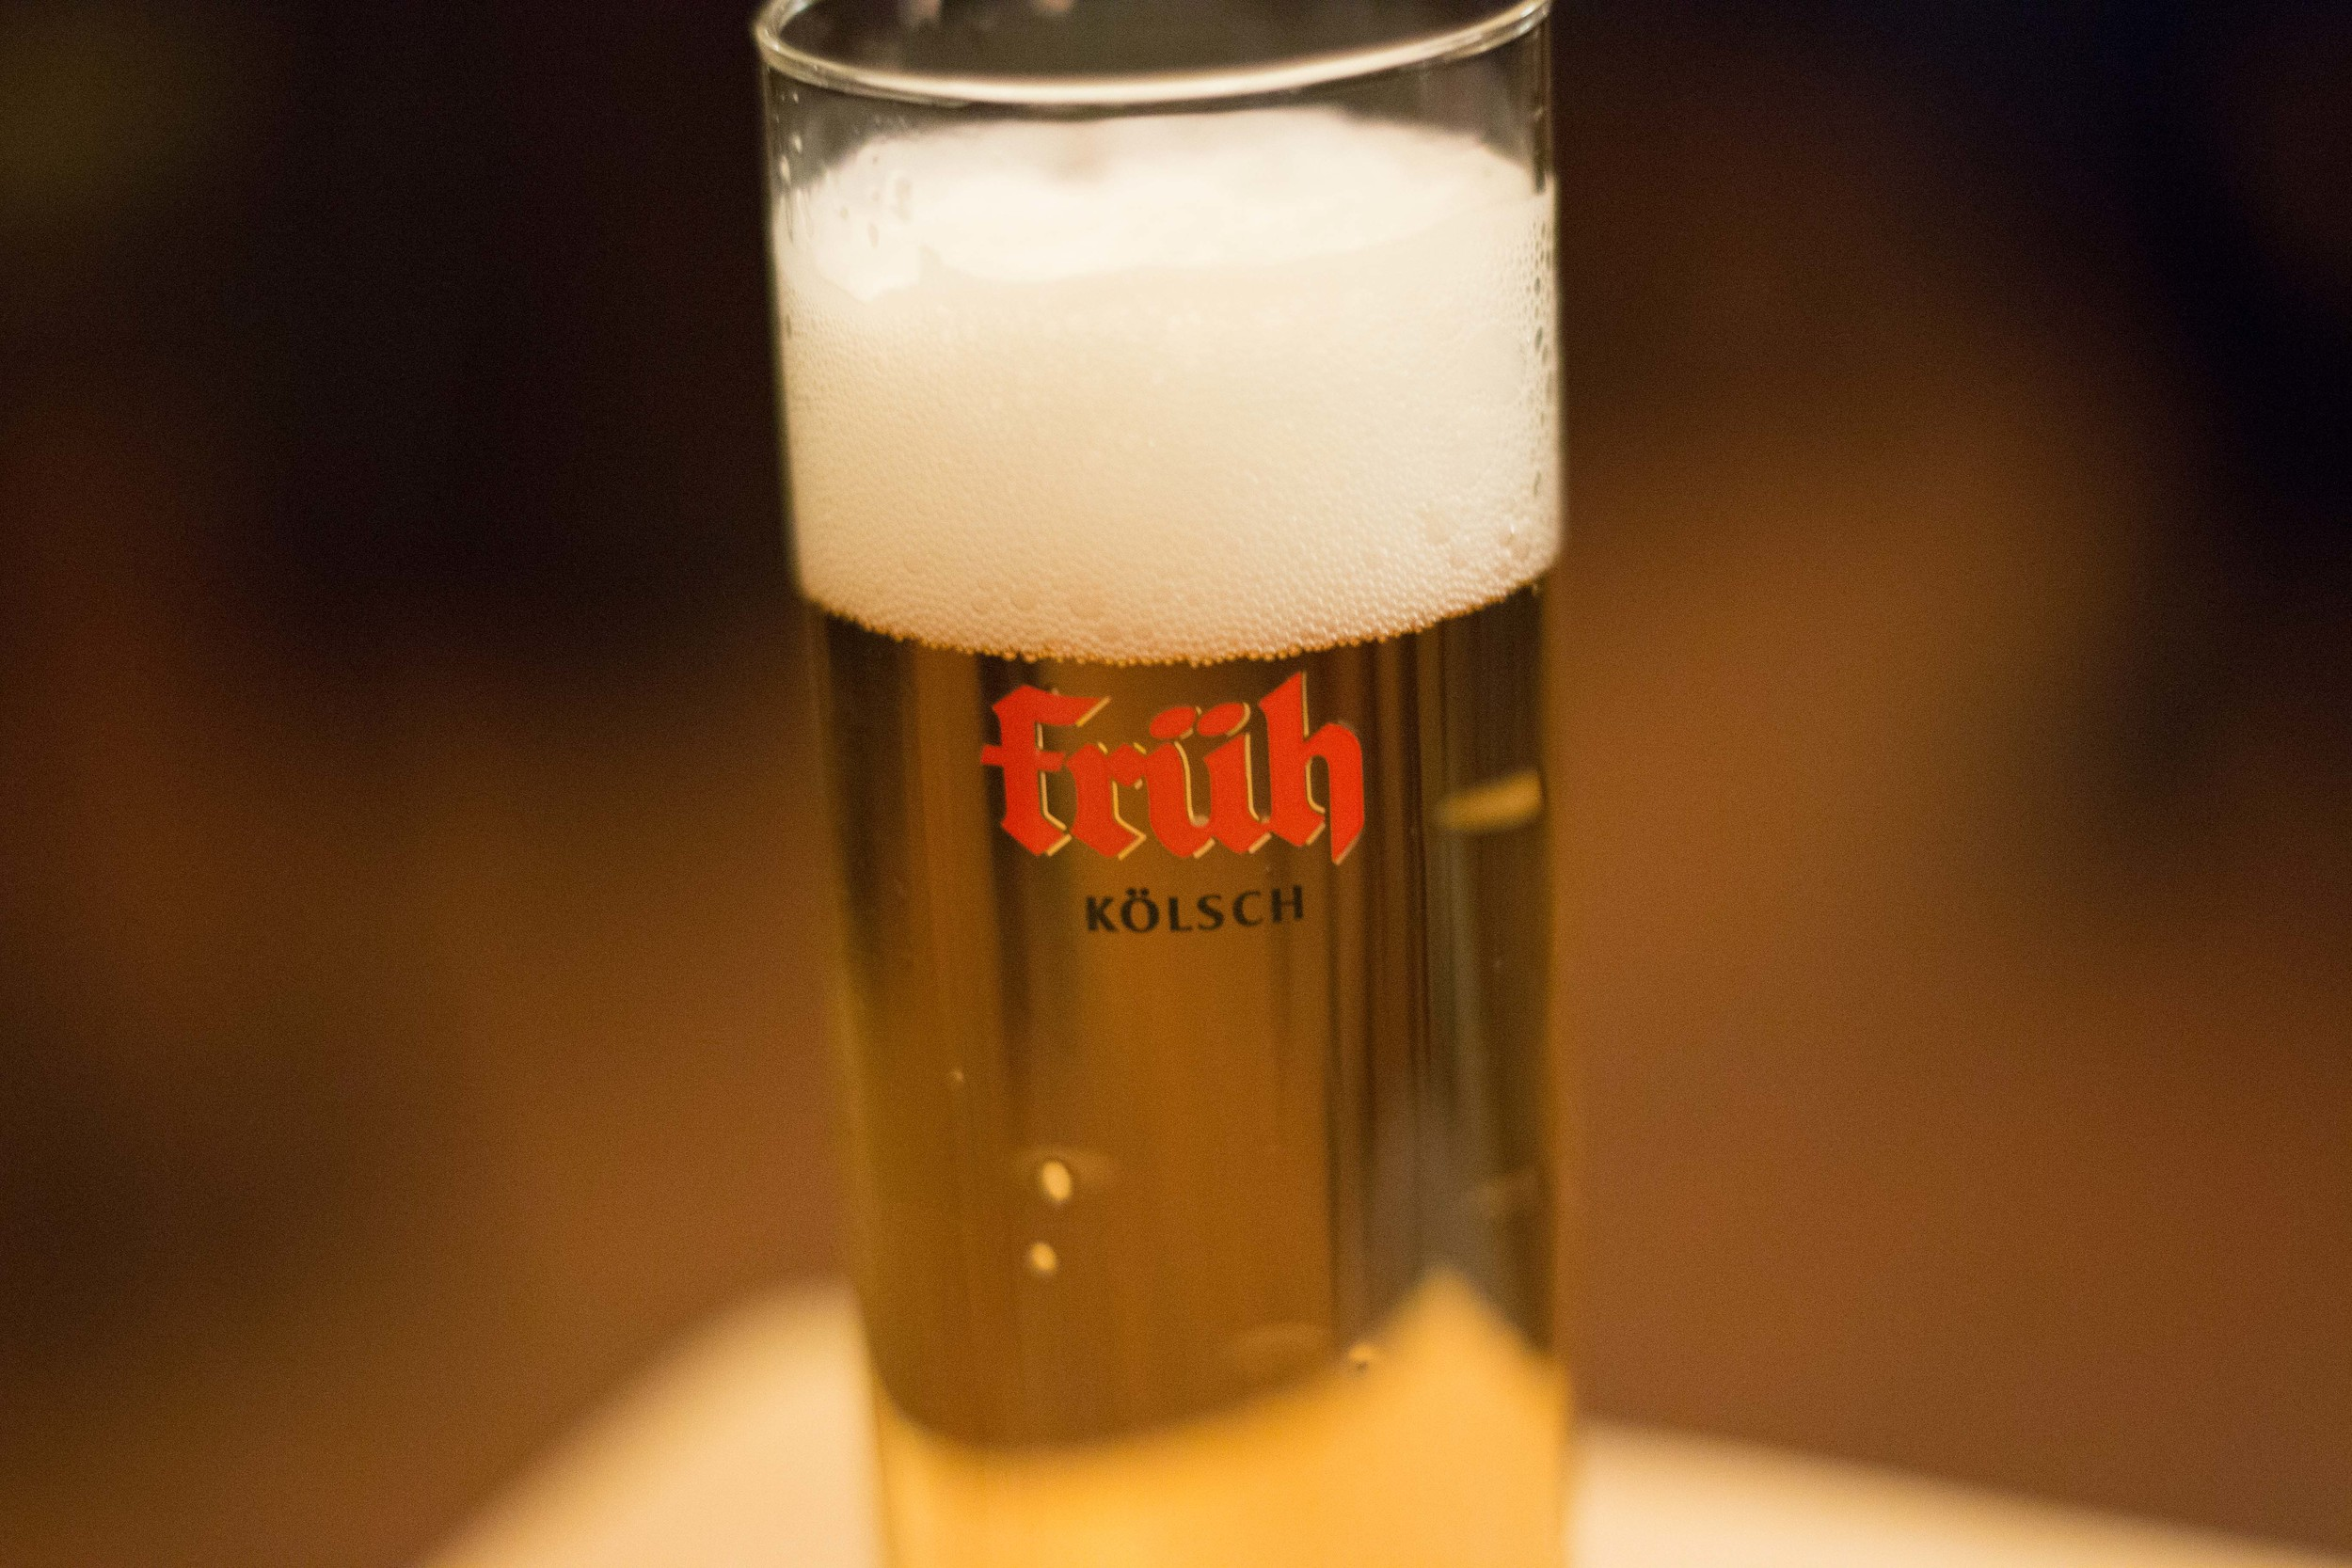 A Kölsch from Früh brewery. This beer is always,always, served in a tall, cylindrical glass. Usually in 0.2L increments, but sometimes in 0.4L.